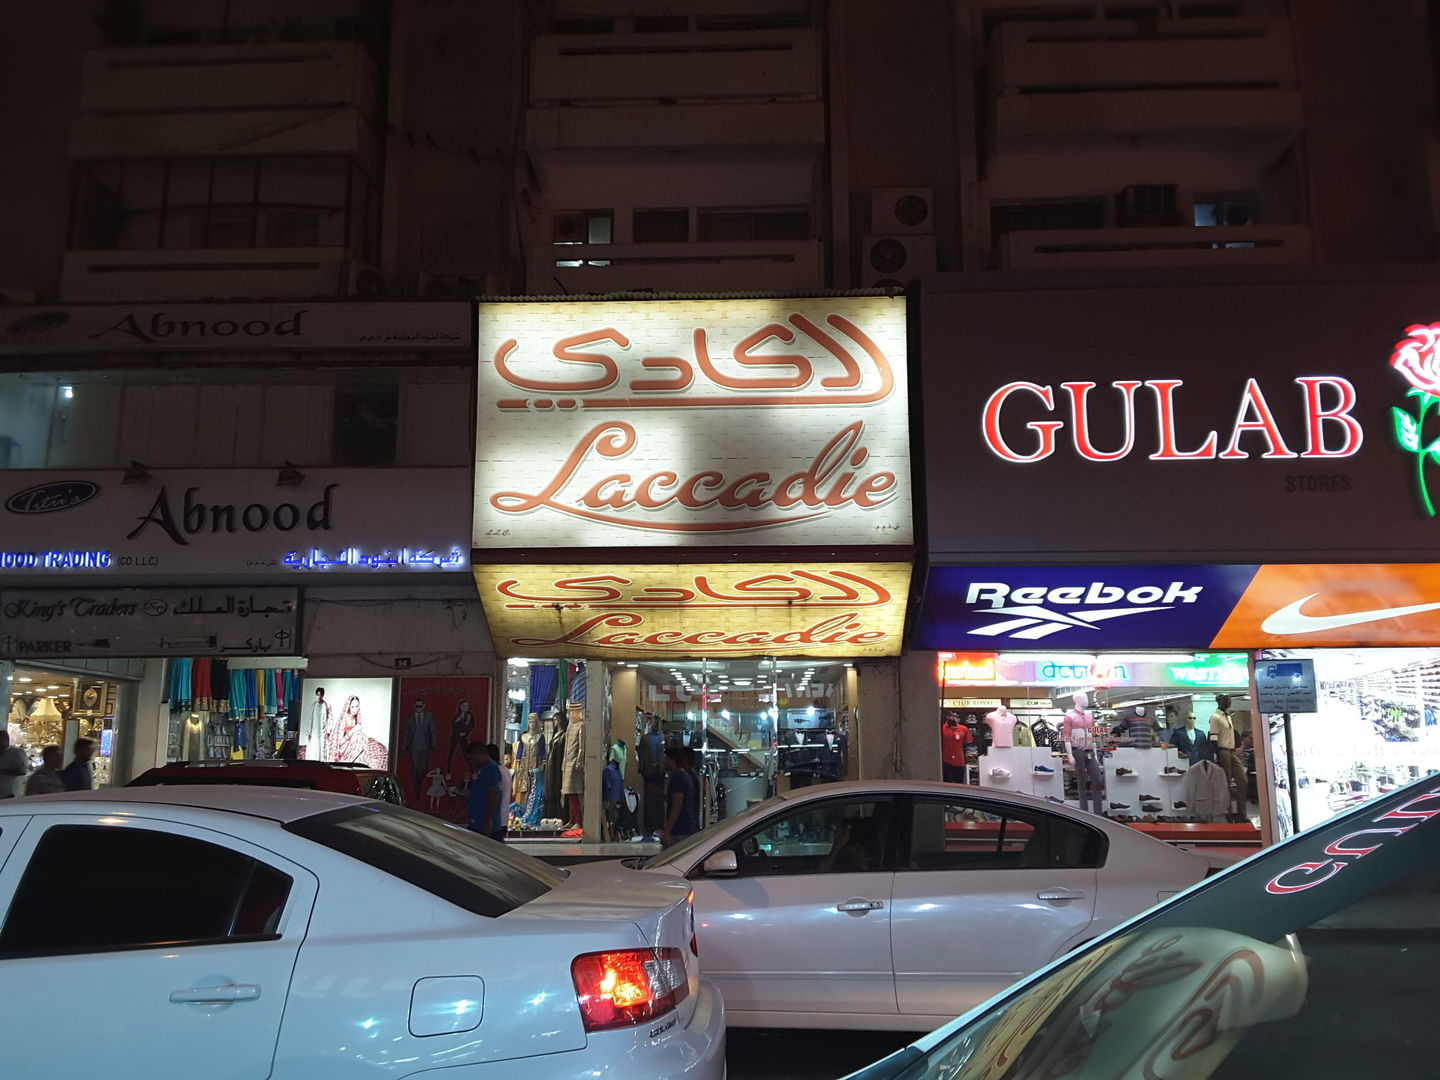 HiDubai-business-laccadie-co-shopping-apparel-meena-bazar-al-souq-al-kabeer-dubai-2